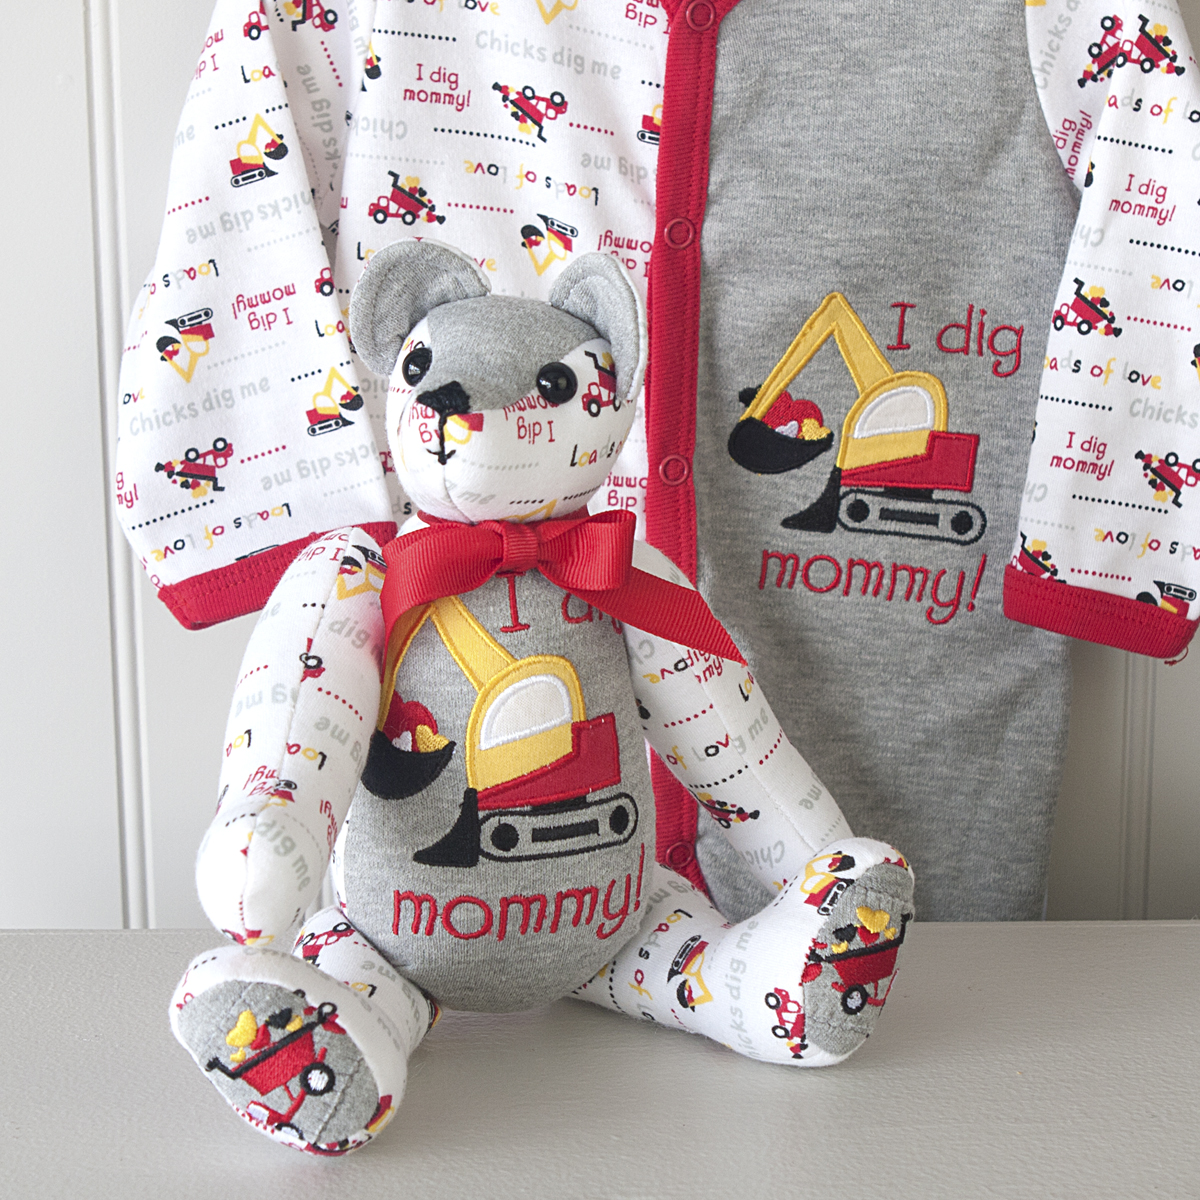 In this two day class you will be making a jointed Teddy Bear from a keepsake sleeper a special baby wore, or from a new sleeper for a new baby! Linda P will teach you how to construct this adorable teddy from a baby sleeper, sized 3-6 months. Size is important, if it's too small, you won't have enough fabric, if it's too big the decoration won't fit the bear. You bring the sleeper, your sewing machine and thread and we'll have all the other necessary supplies.